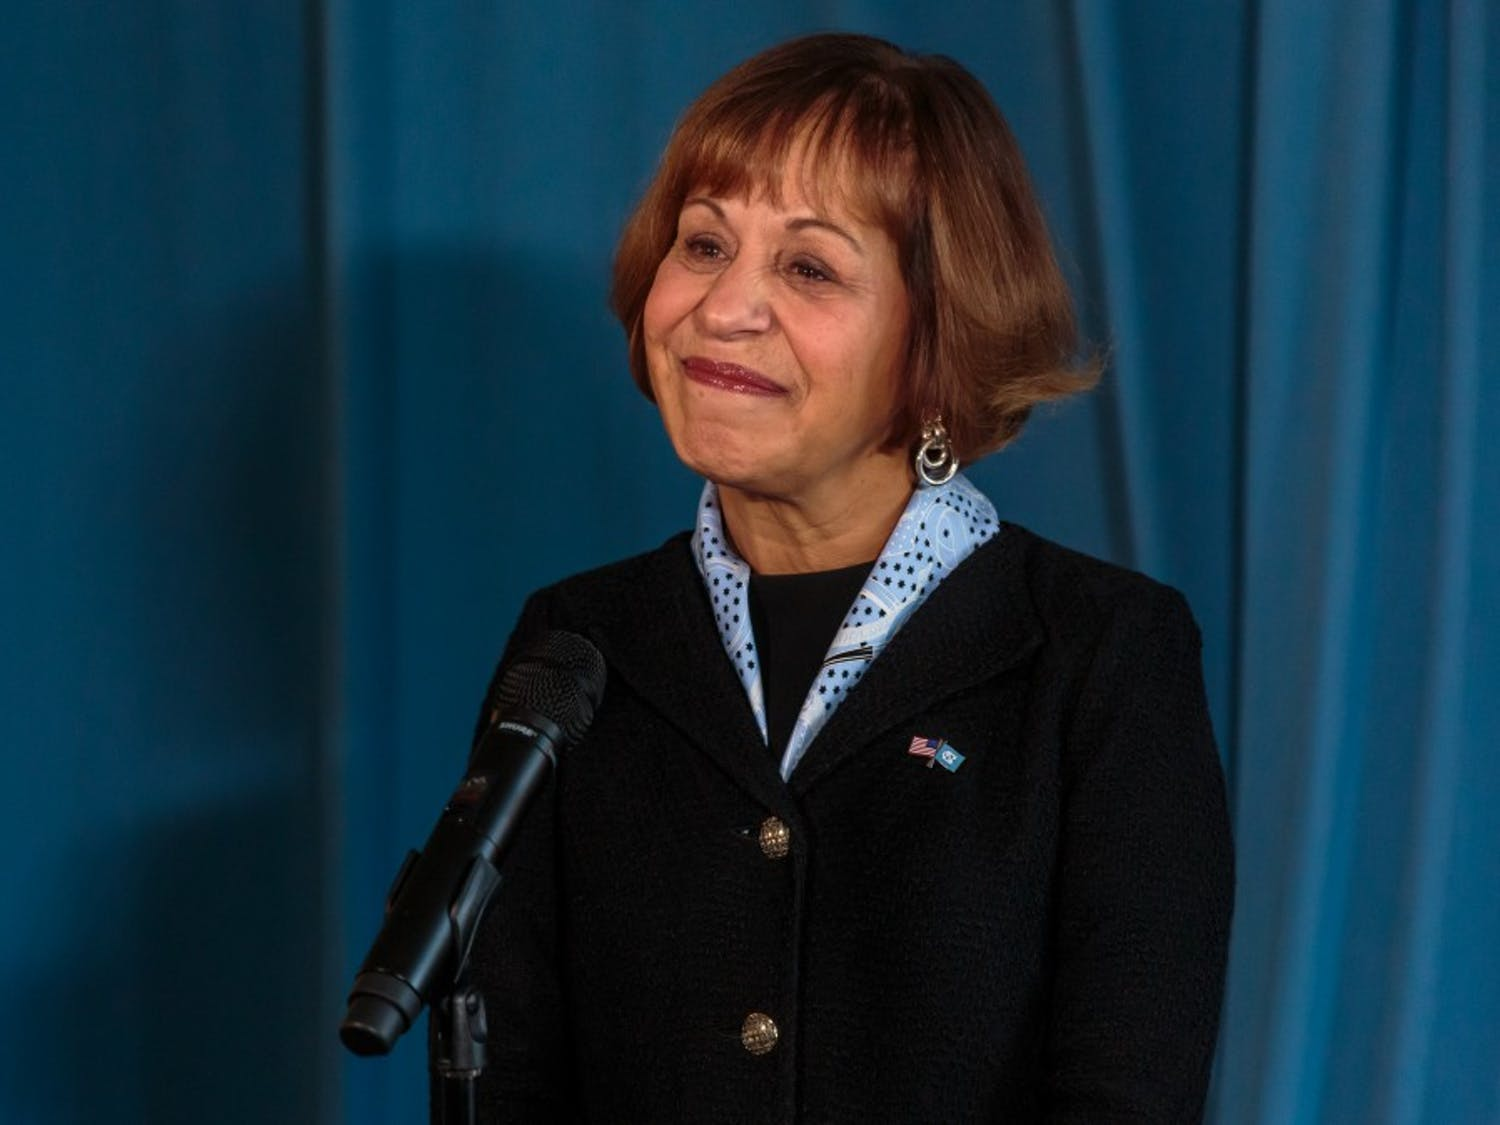 Chancellor Carol Folt takes questions during the media availability of the UNC Board of Trustees meeting on Thursday, Jan. 31 2018 at the Carolina Inn.